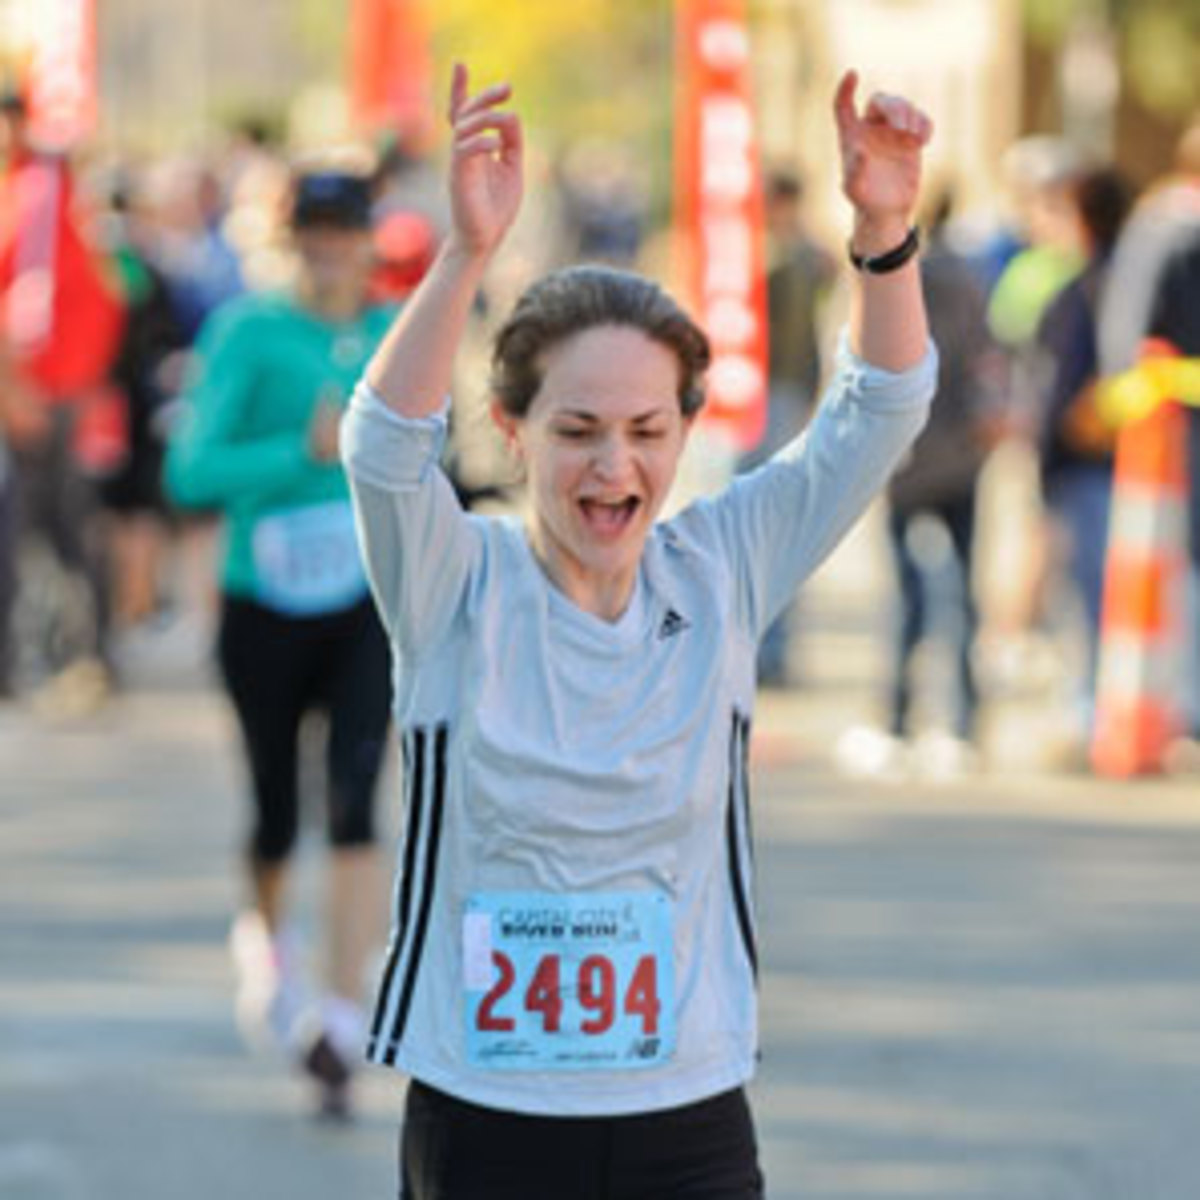 This is me crossing the finish line at MY FIRST RACE, a half-marathon--The Captial City River Run in  Lansing, MI on September 26, 2010. My official time was 2:08:51.